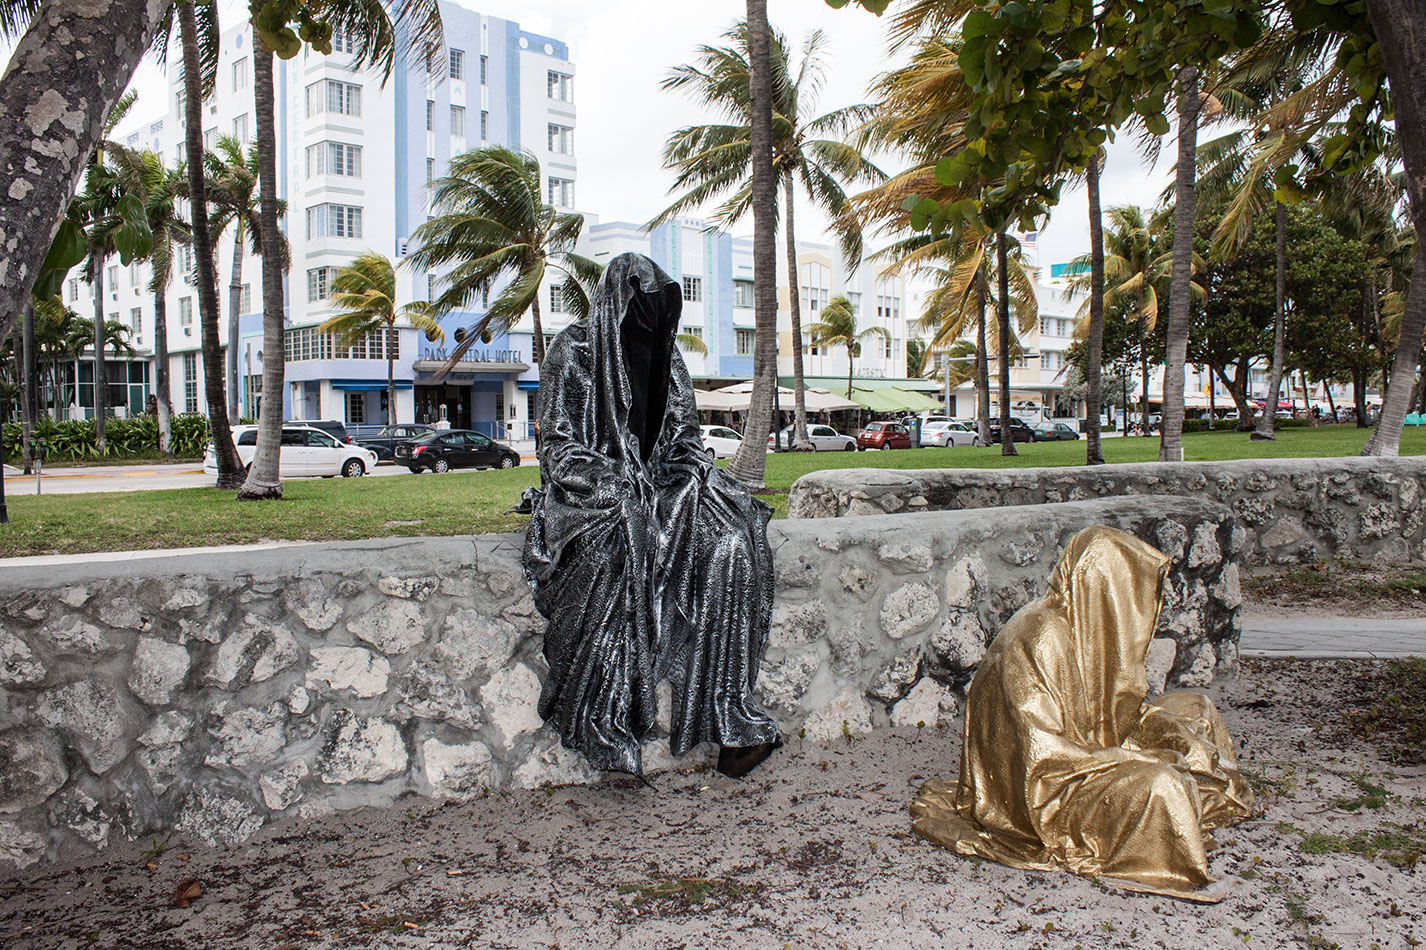 art-basel-miami-beach-fair-usa-florida-guardians-of-time-manfred-kili-kielnhofer-contemporary-fine-art-modern-arts-design-antiques-sculpture-5956